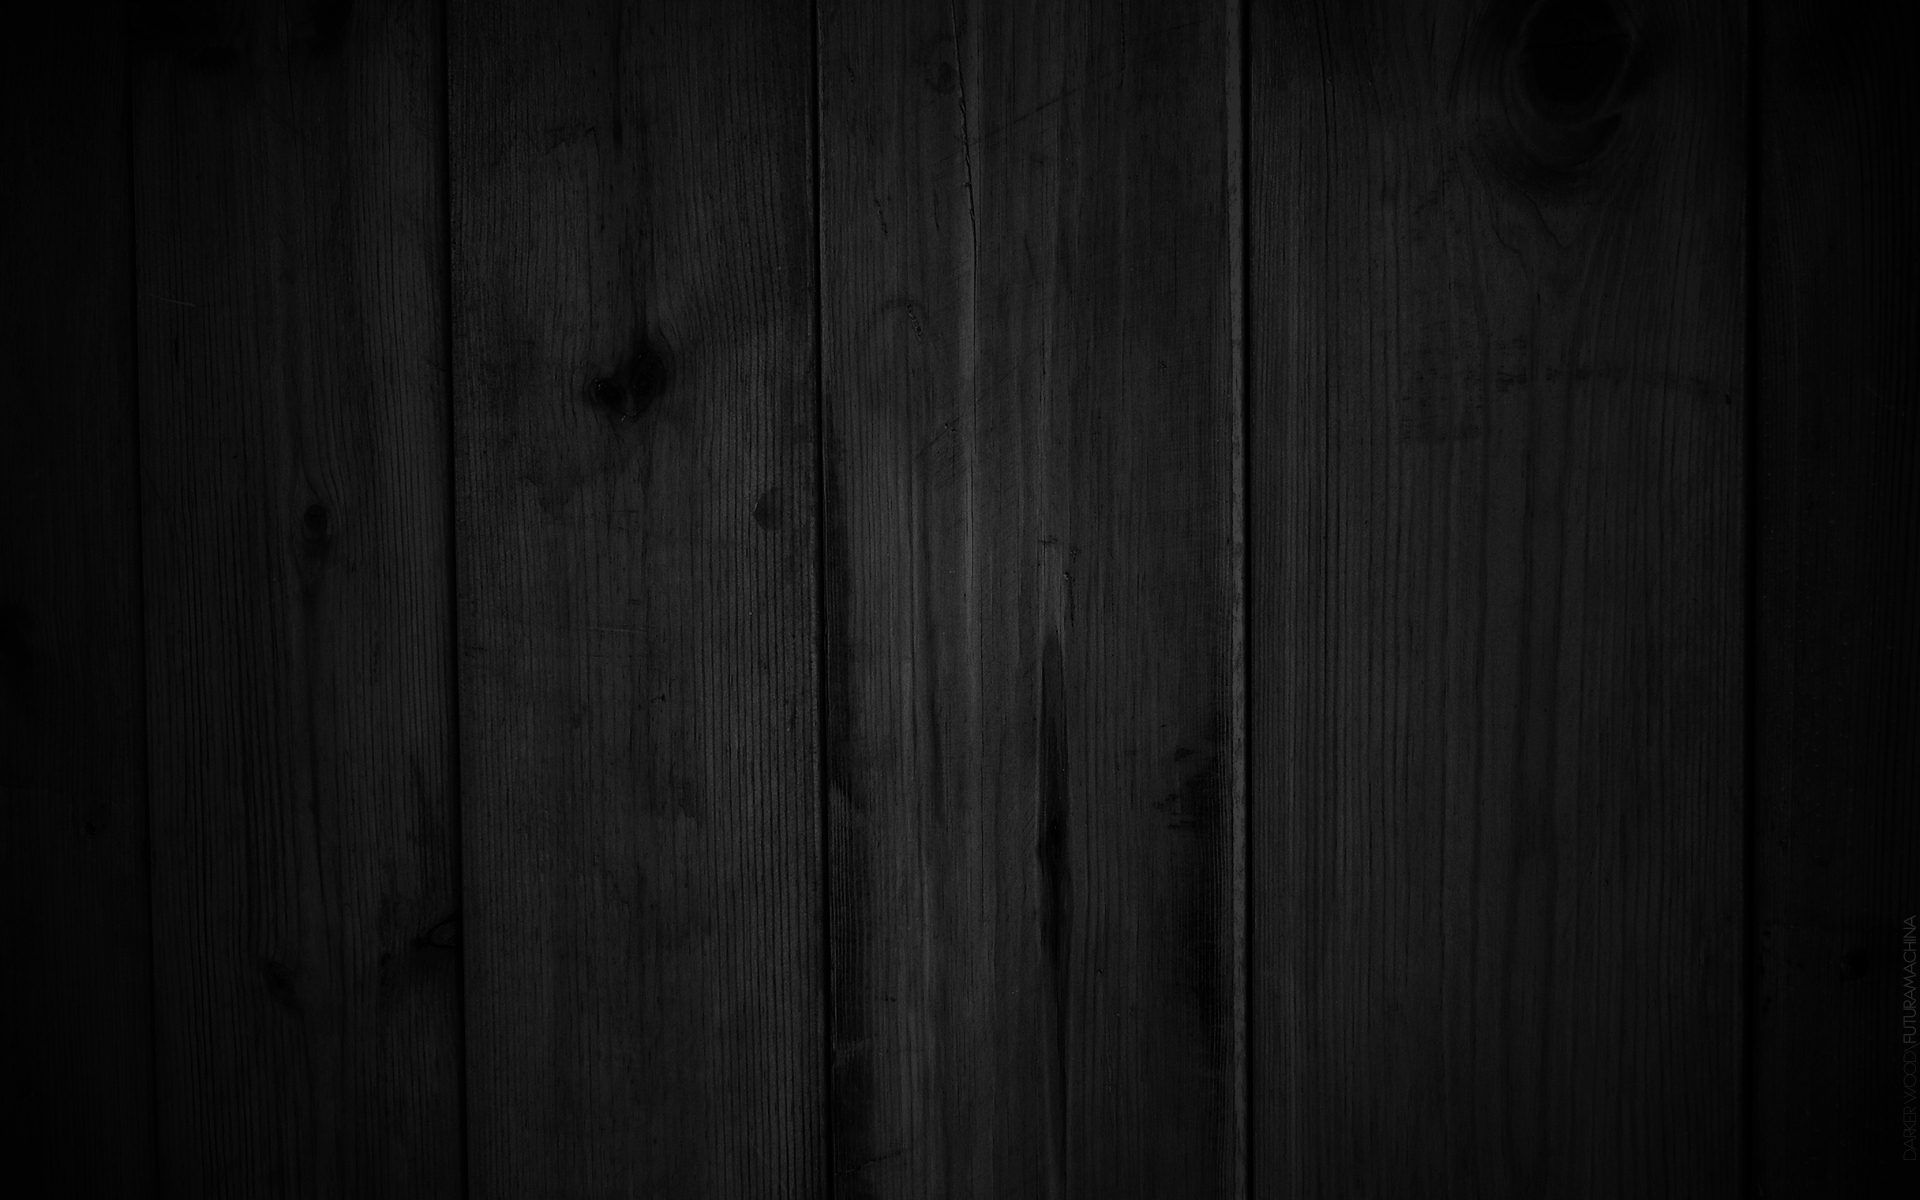 wood-dark-background